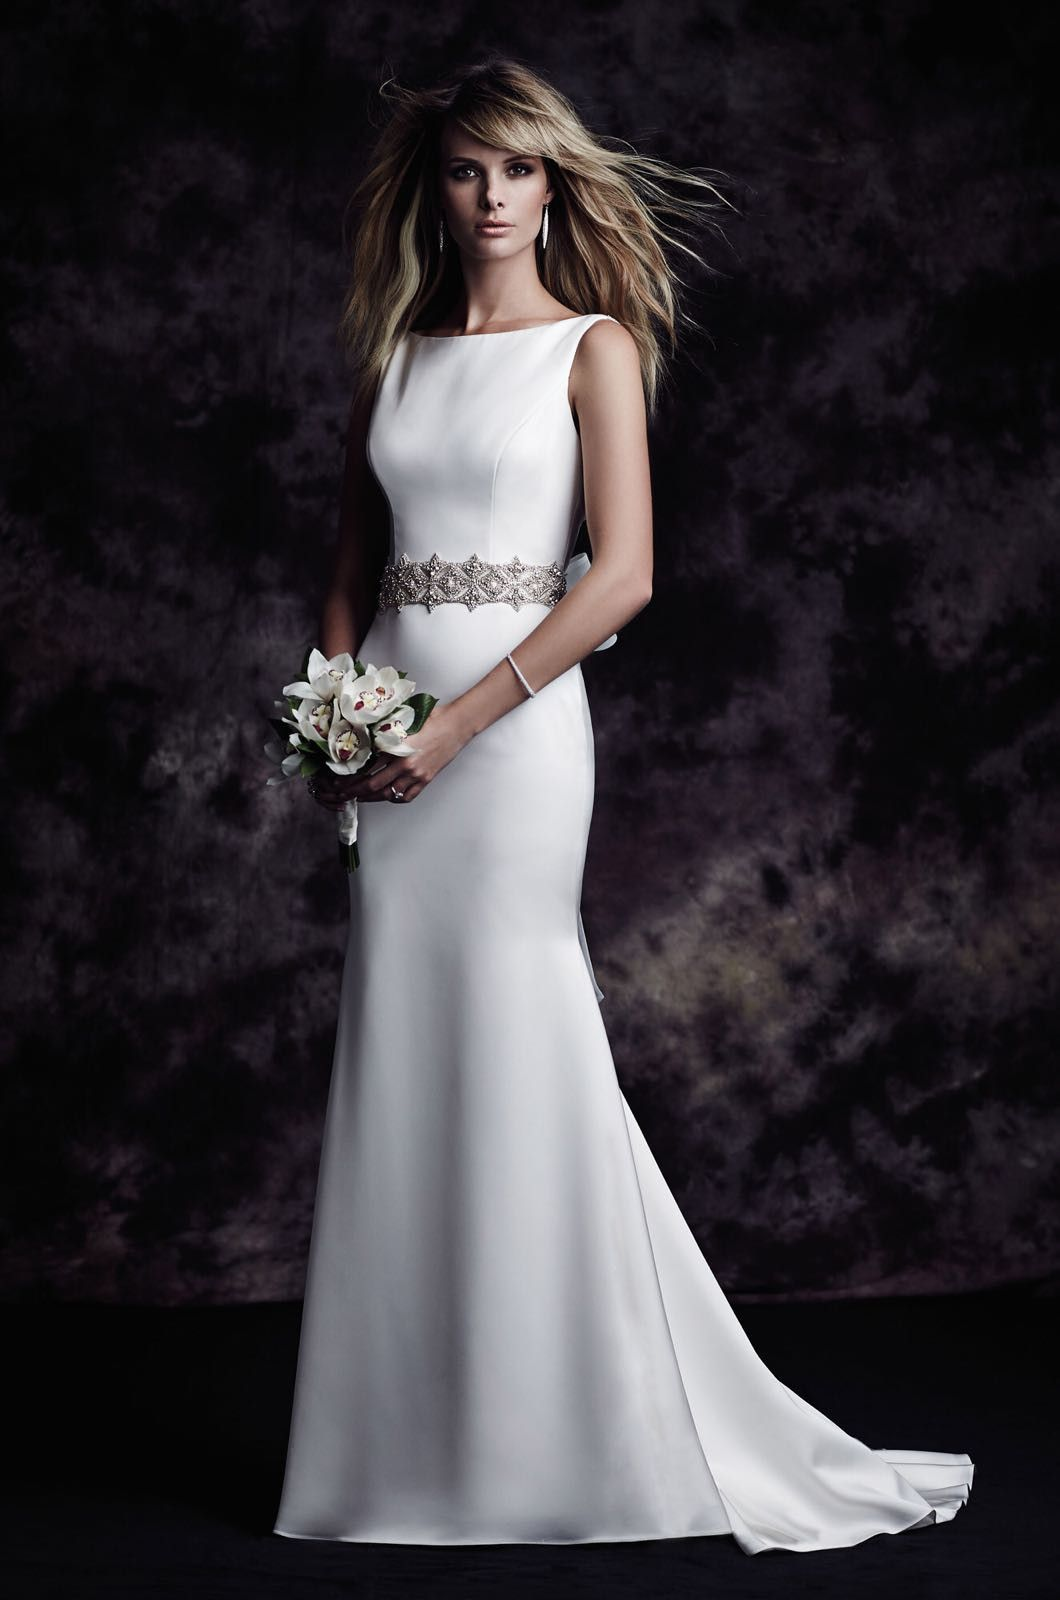 cb903f8c14f Where To Sell Preowned Wedding Dresses - Data Dynamic AG